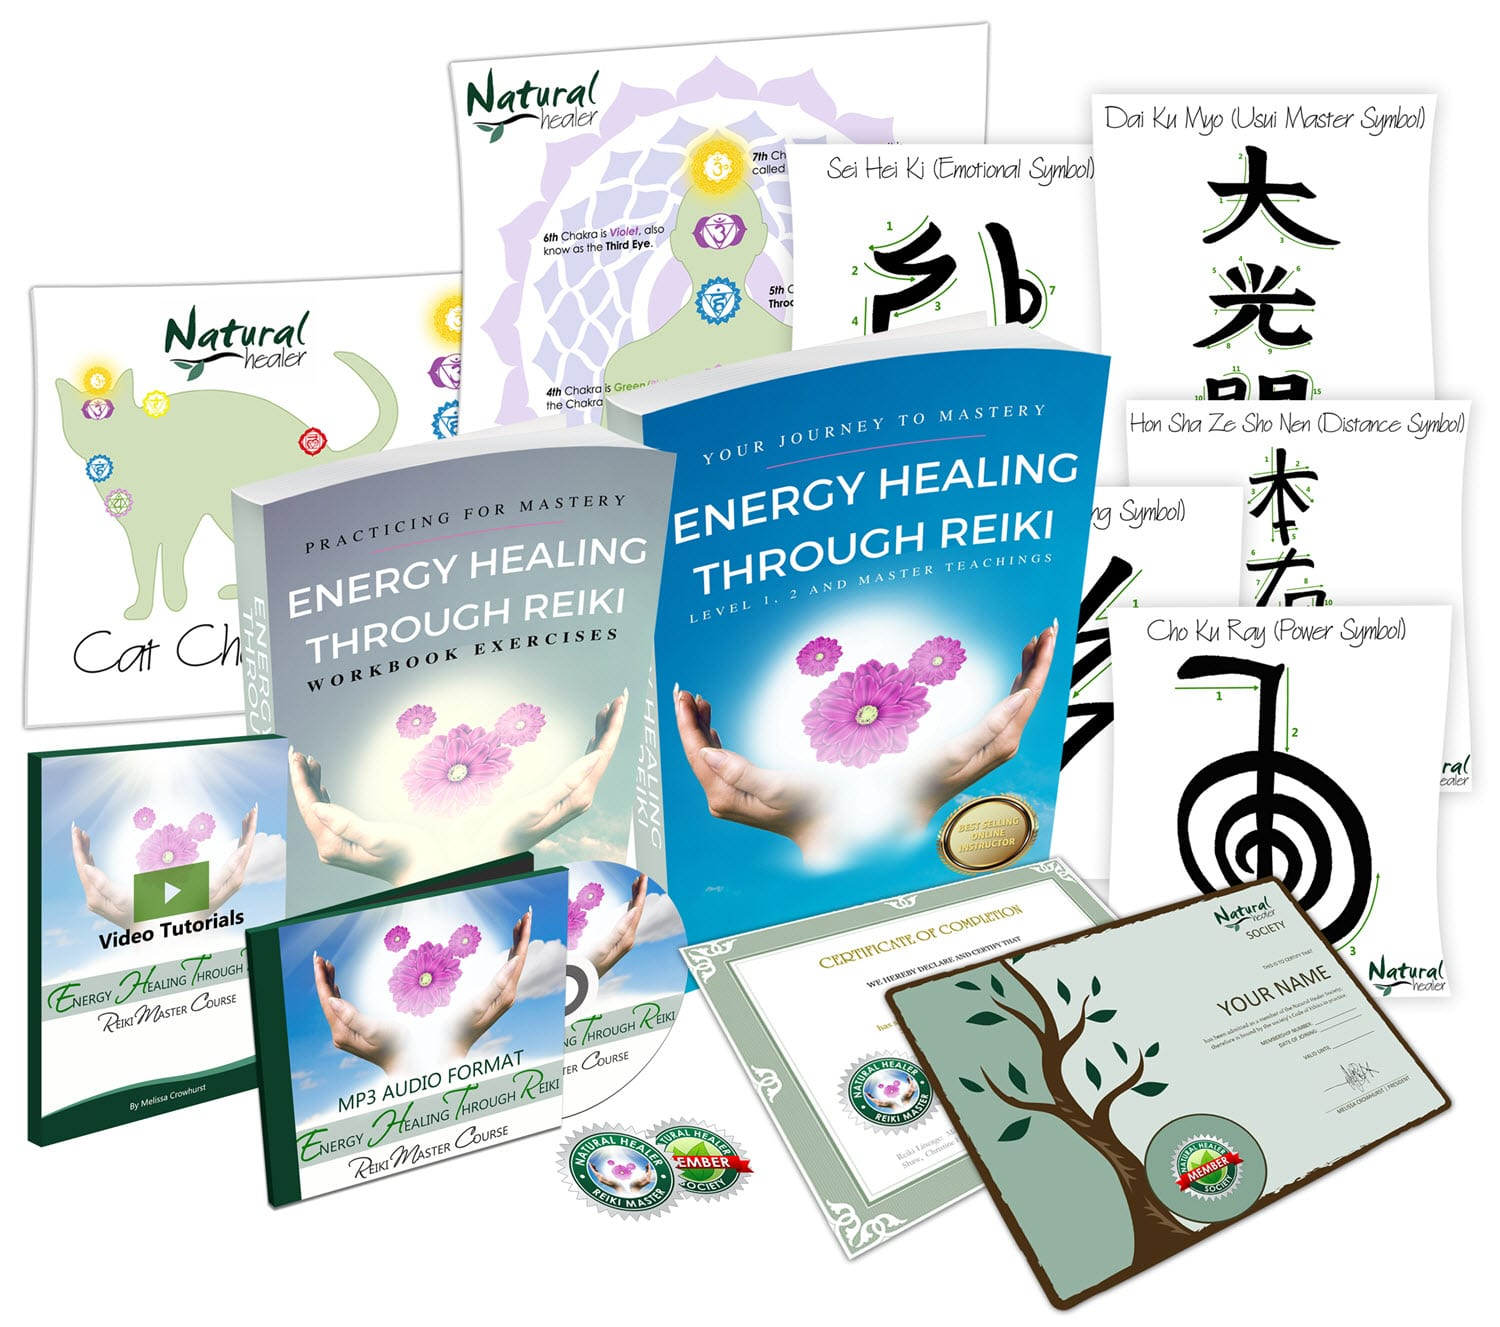 Levels 1, 2 and Reiki Master Certification Course Online